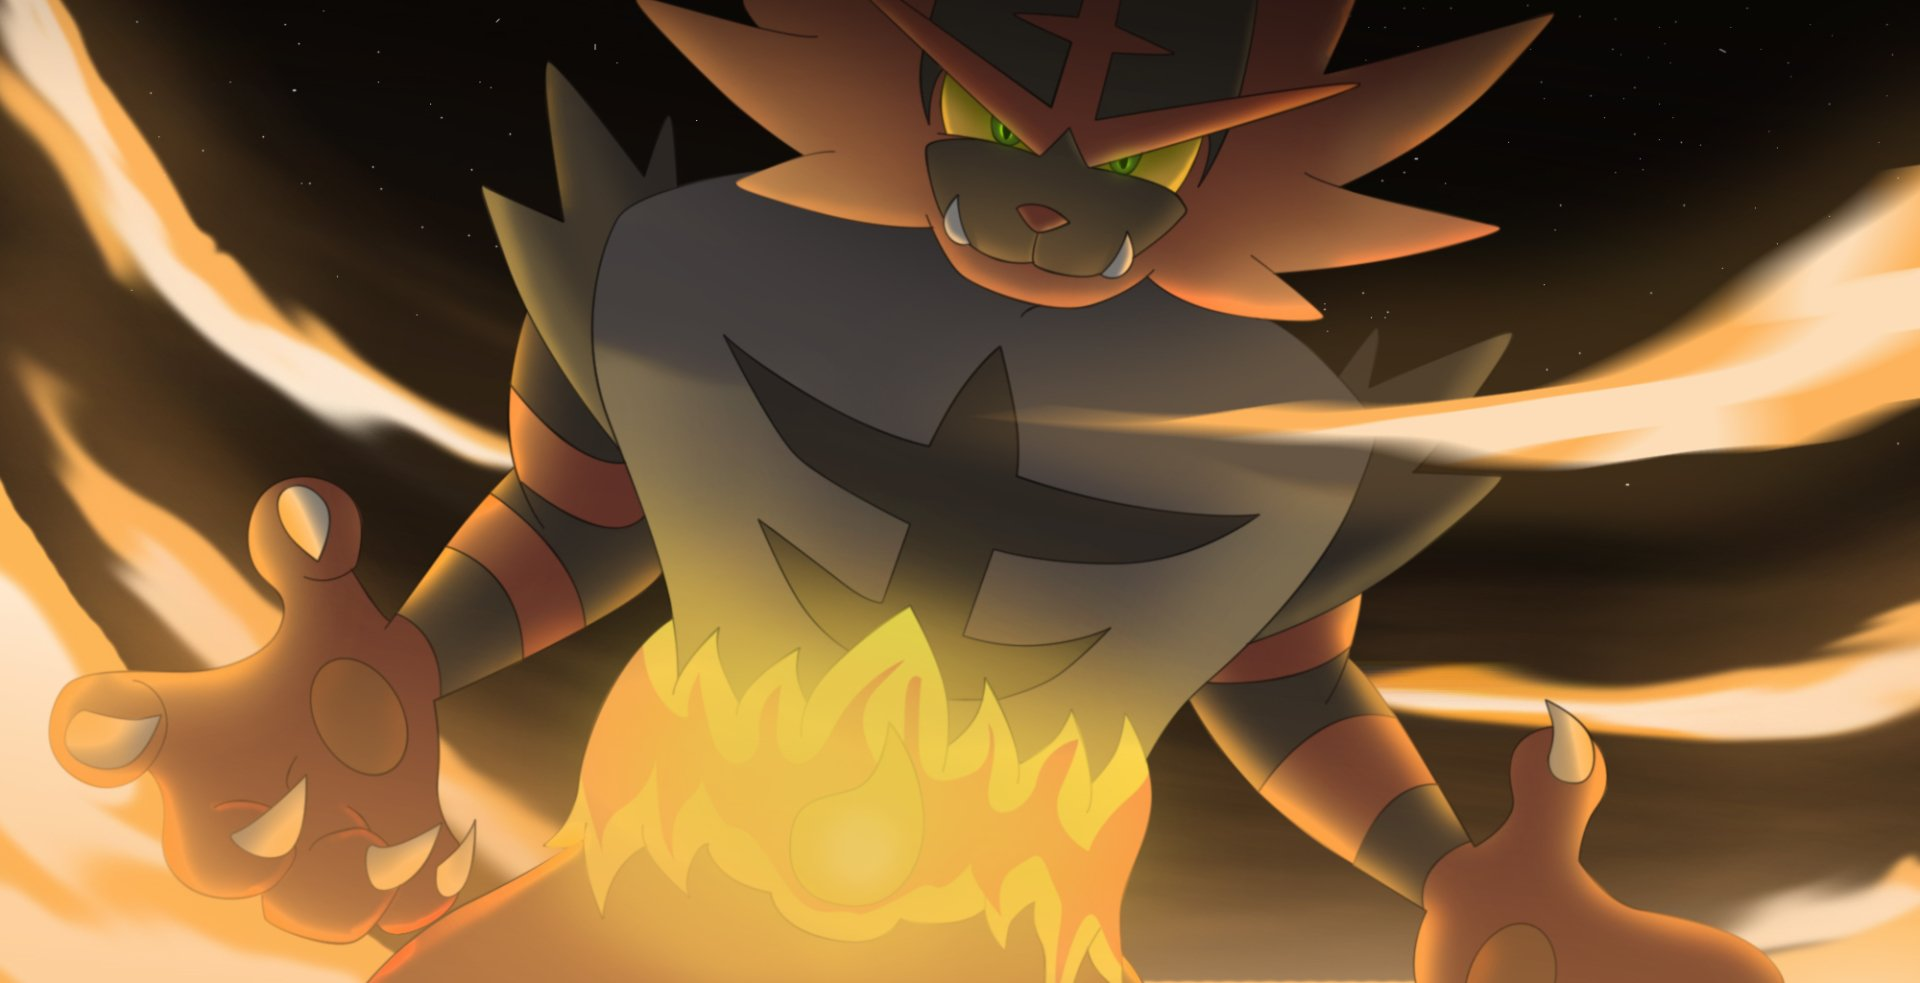 Pokemon Sun And Moon Wallpaper: Litten's Last Evolution Incineroar! Wallpaper And